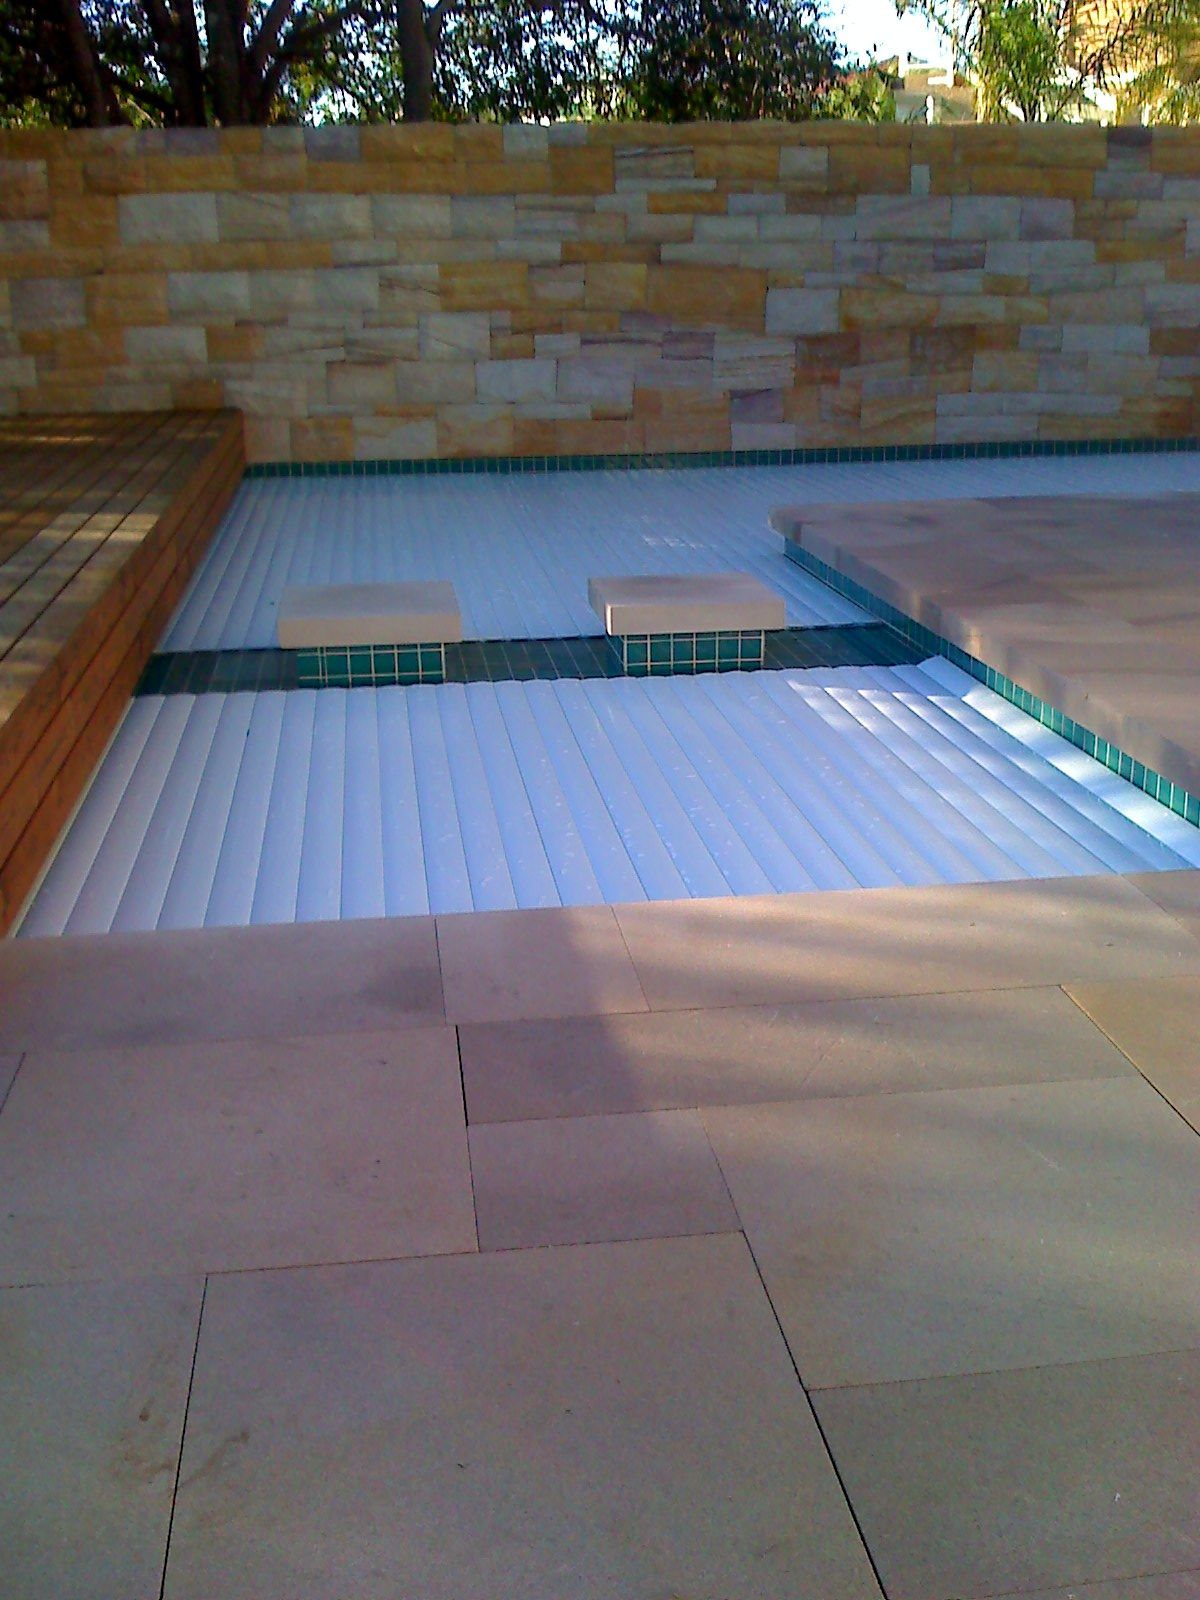 Automatic pool safety security cover pool cover pool